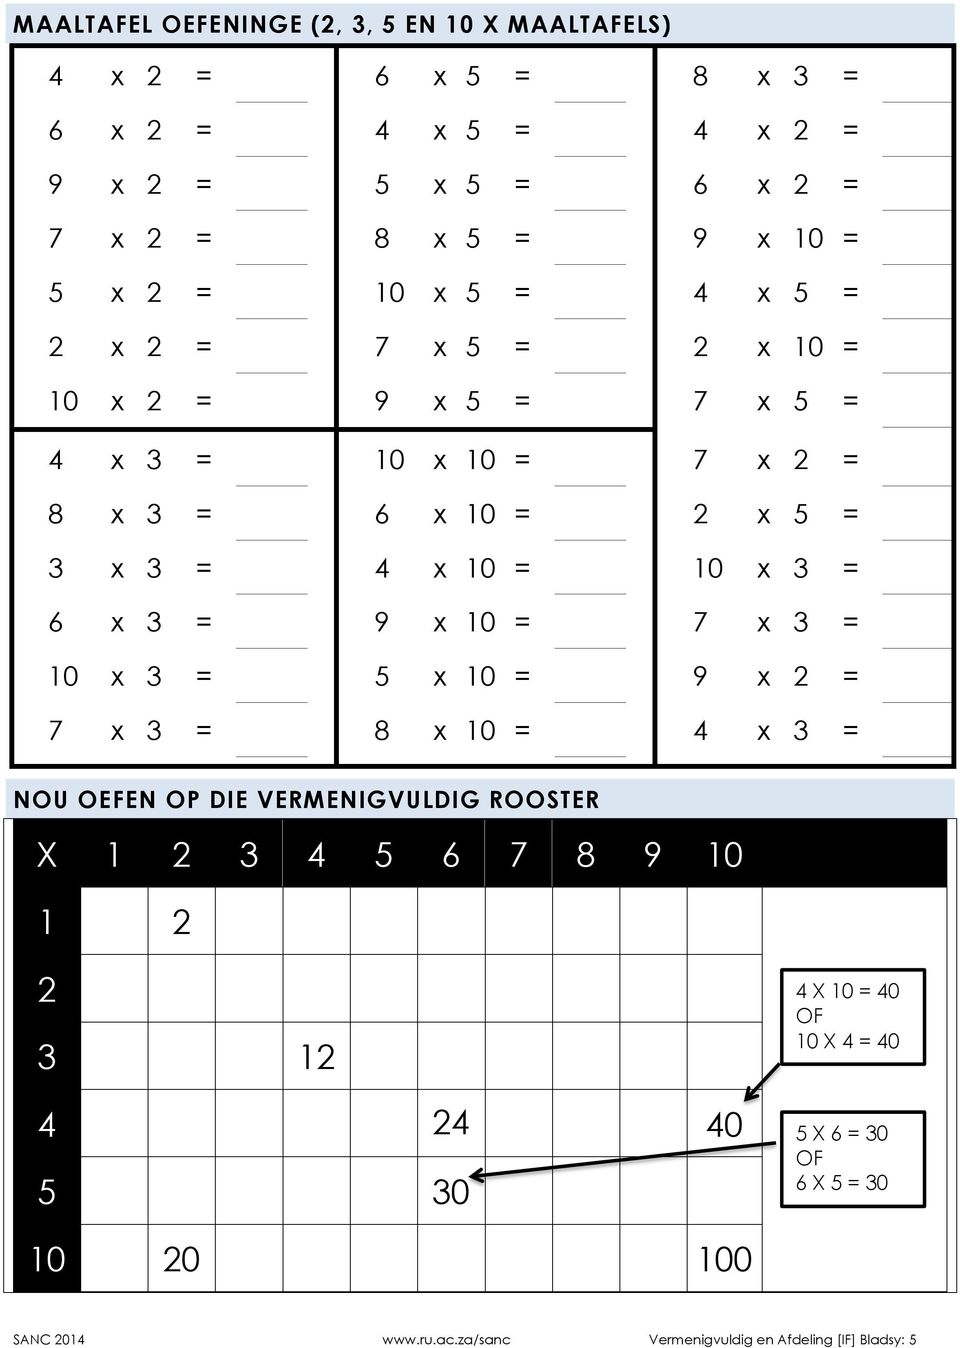 x 3 = 6 x 3 = 9 x 10 = 7 x 3 = 10 x 3 = 5 x 10 = 9 x 2 = 7 x 3 = 8 x 10 = 4 x 3 = NOU OEFEN OP DIE VERMENIGVULDIG ROOSTER 2 3 4 5 6 7 8 9 10 1 2 2